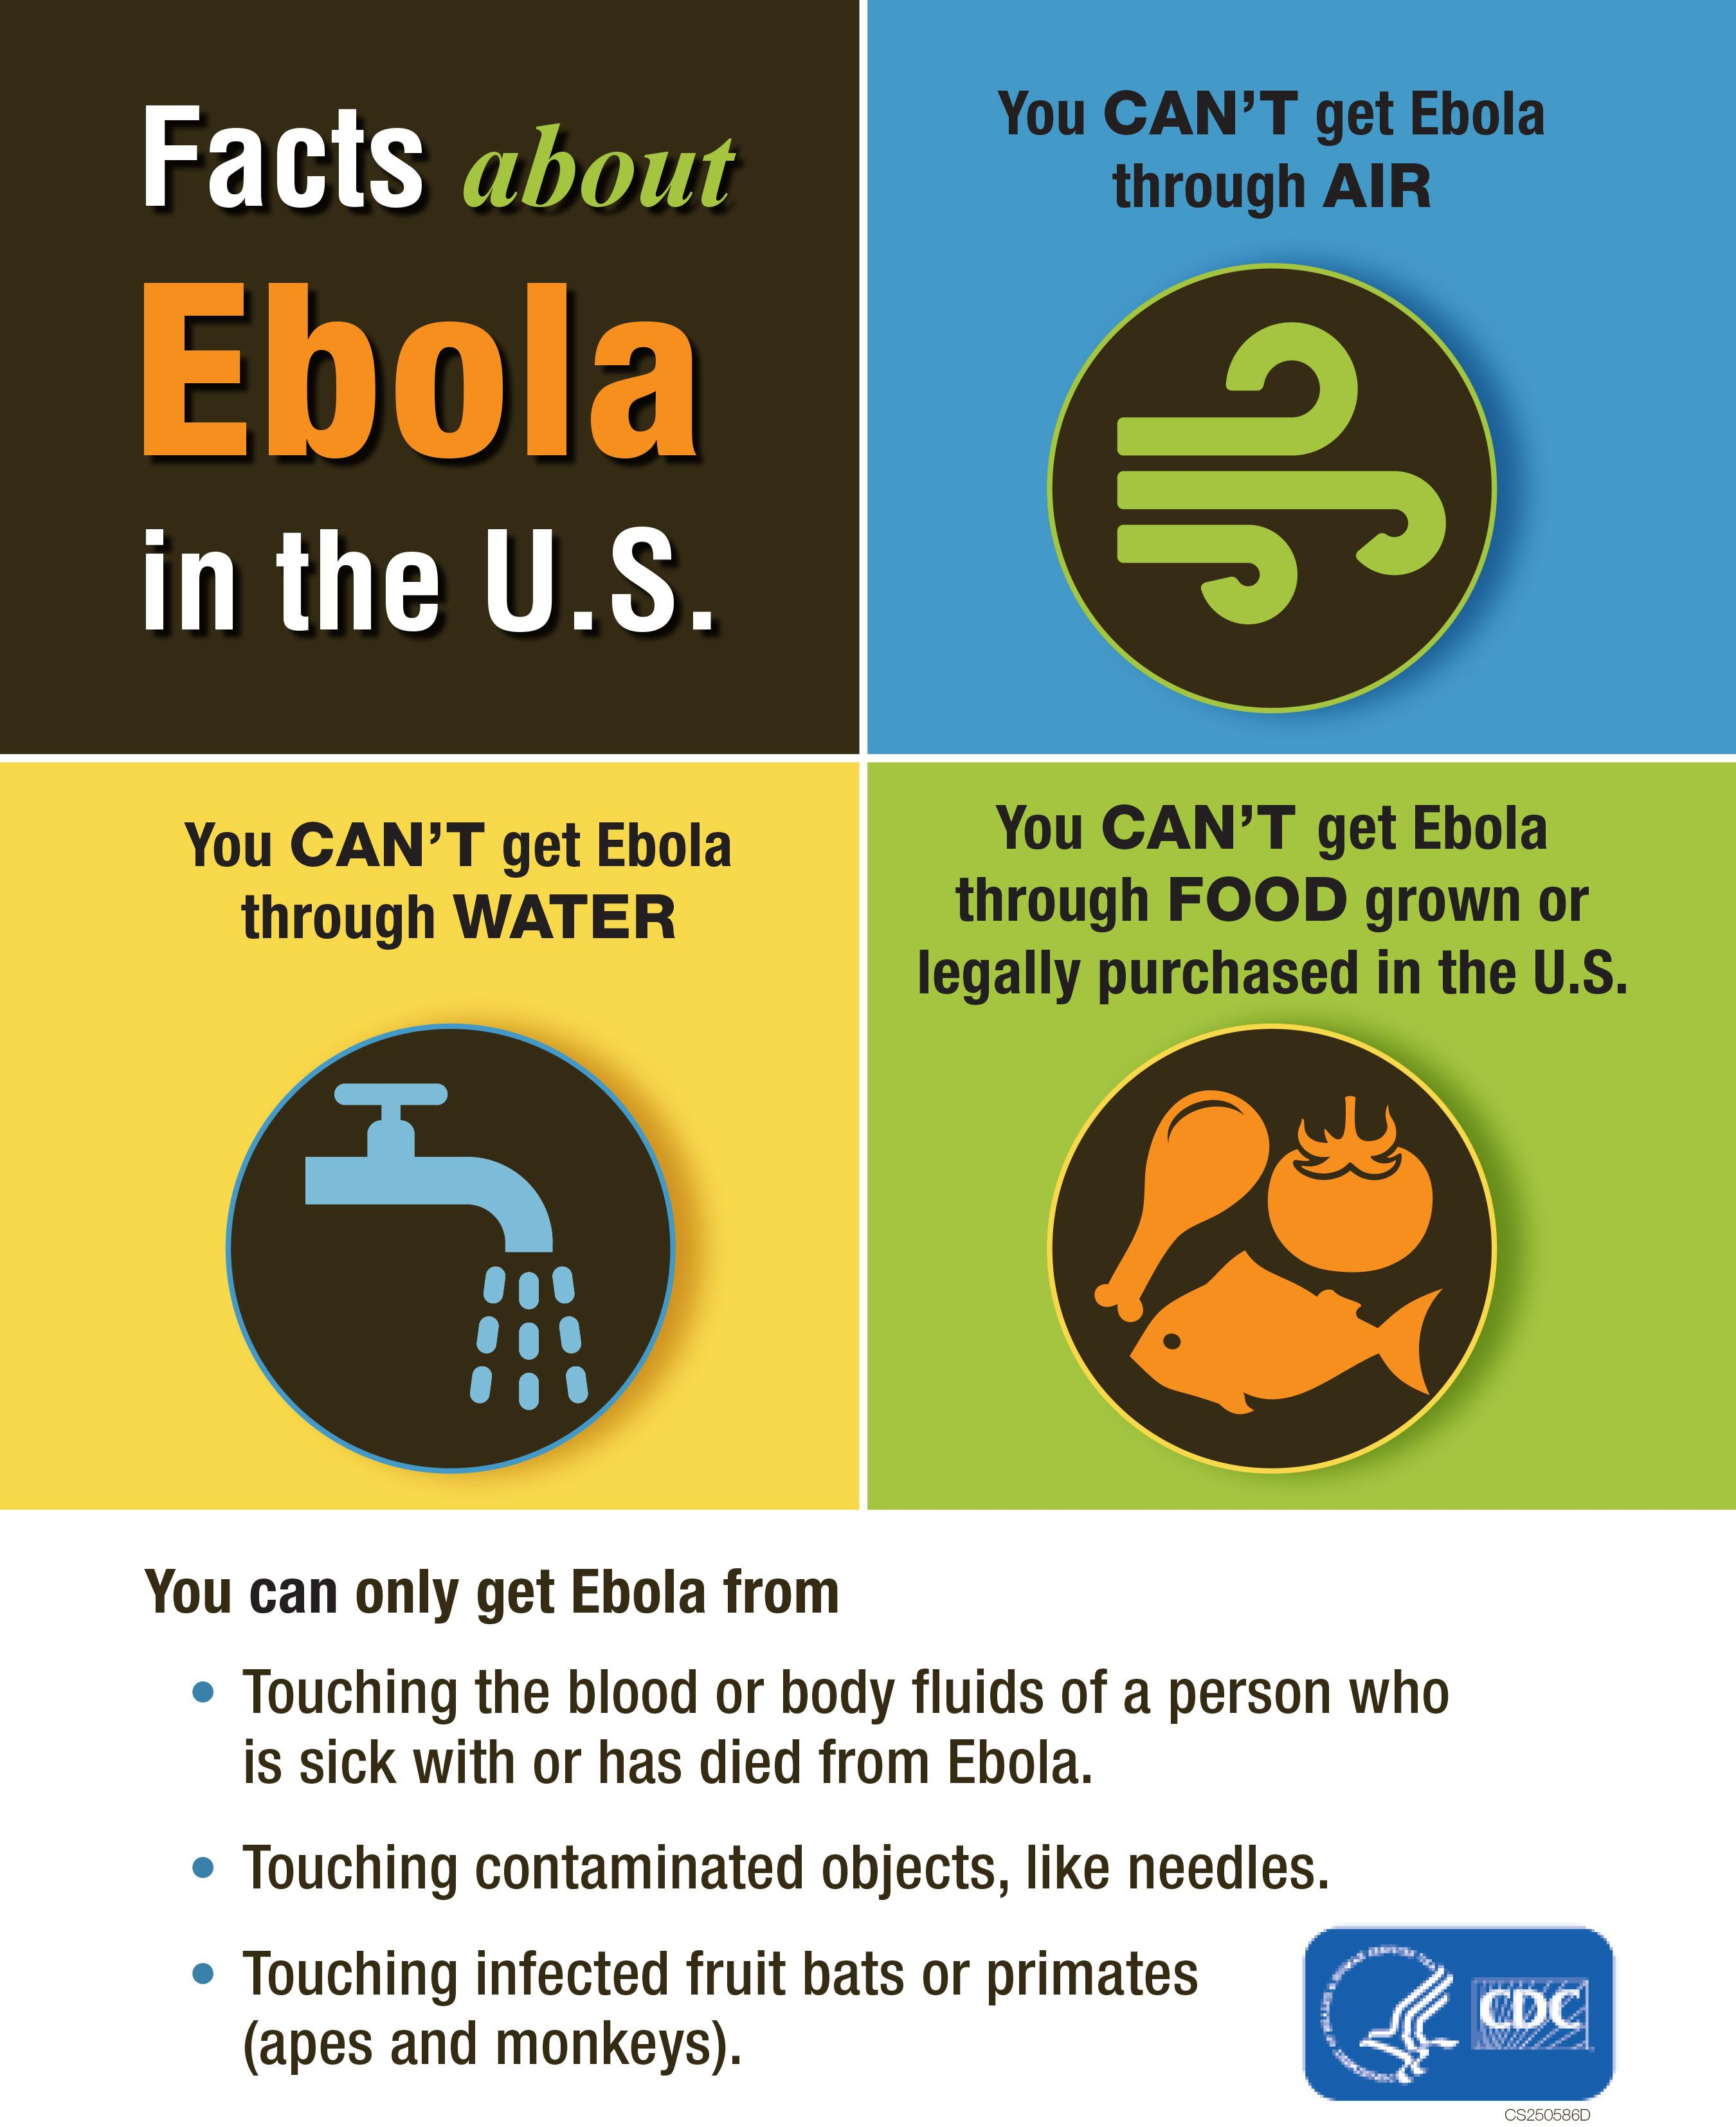 Facts about Ebola in the United States from the Centers for Disease Control and Prevention.